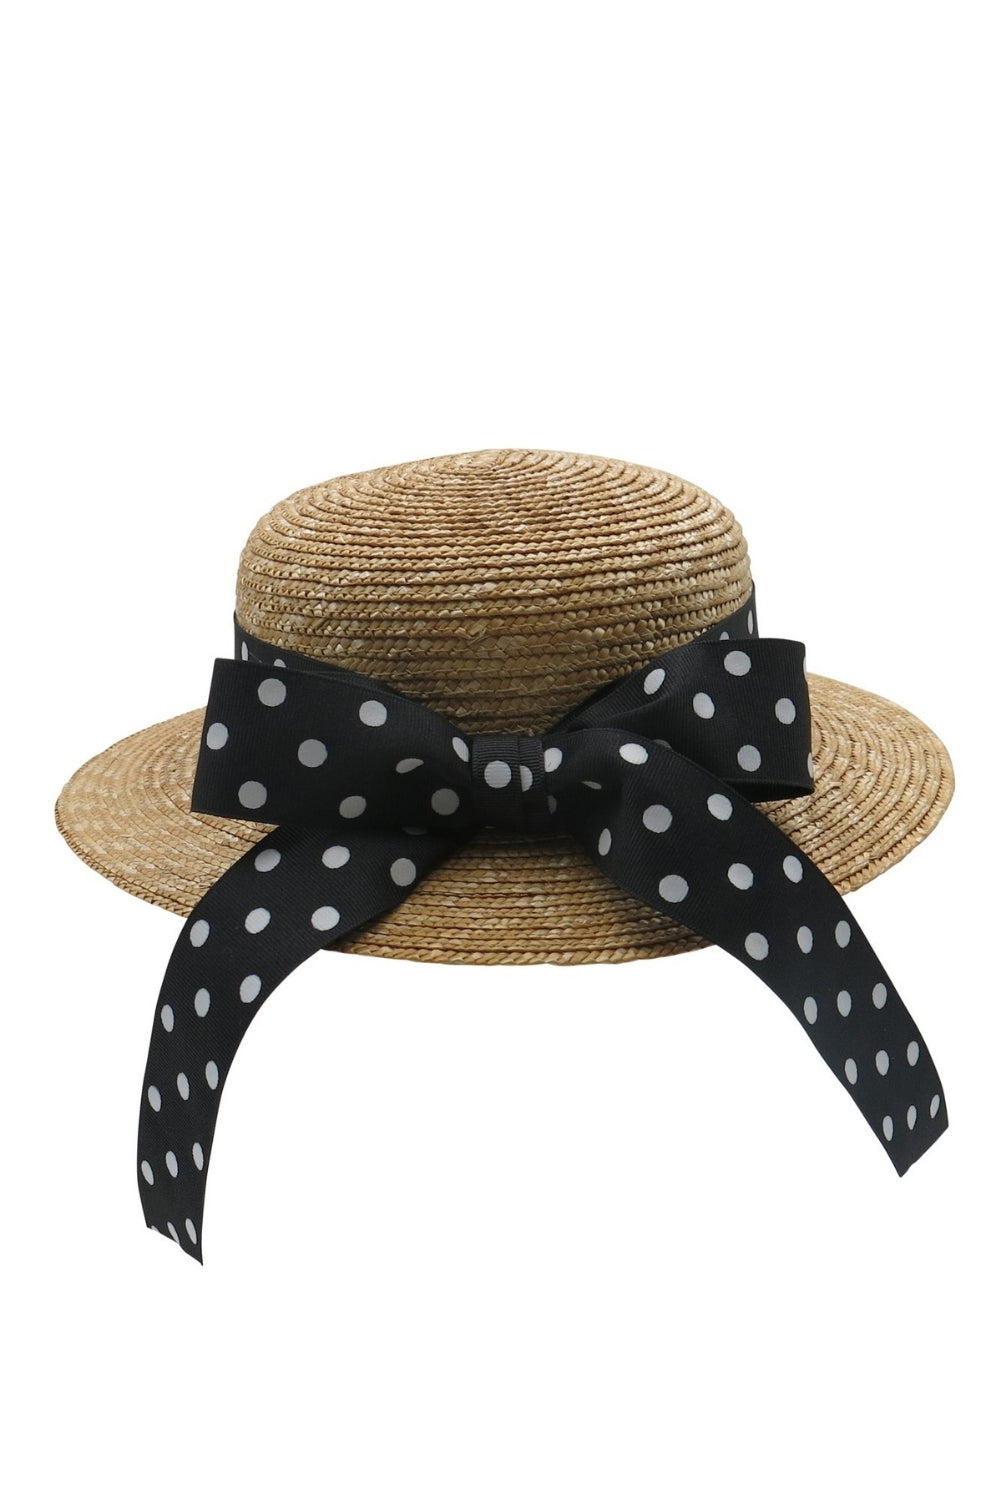 Morgan & Taylor Kids Eleni Straw Boater